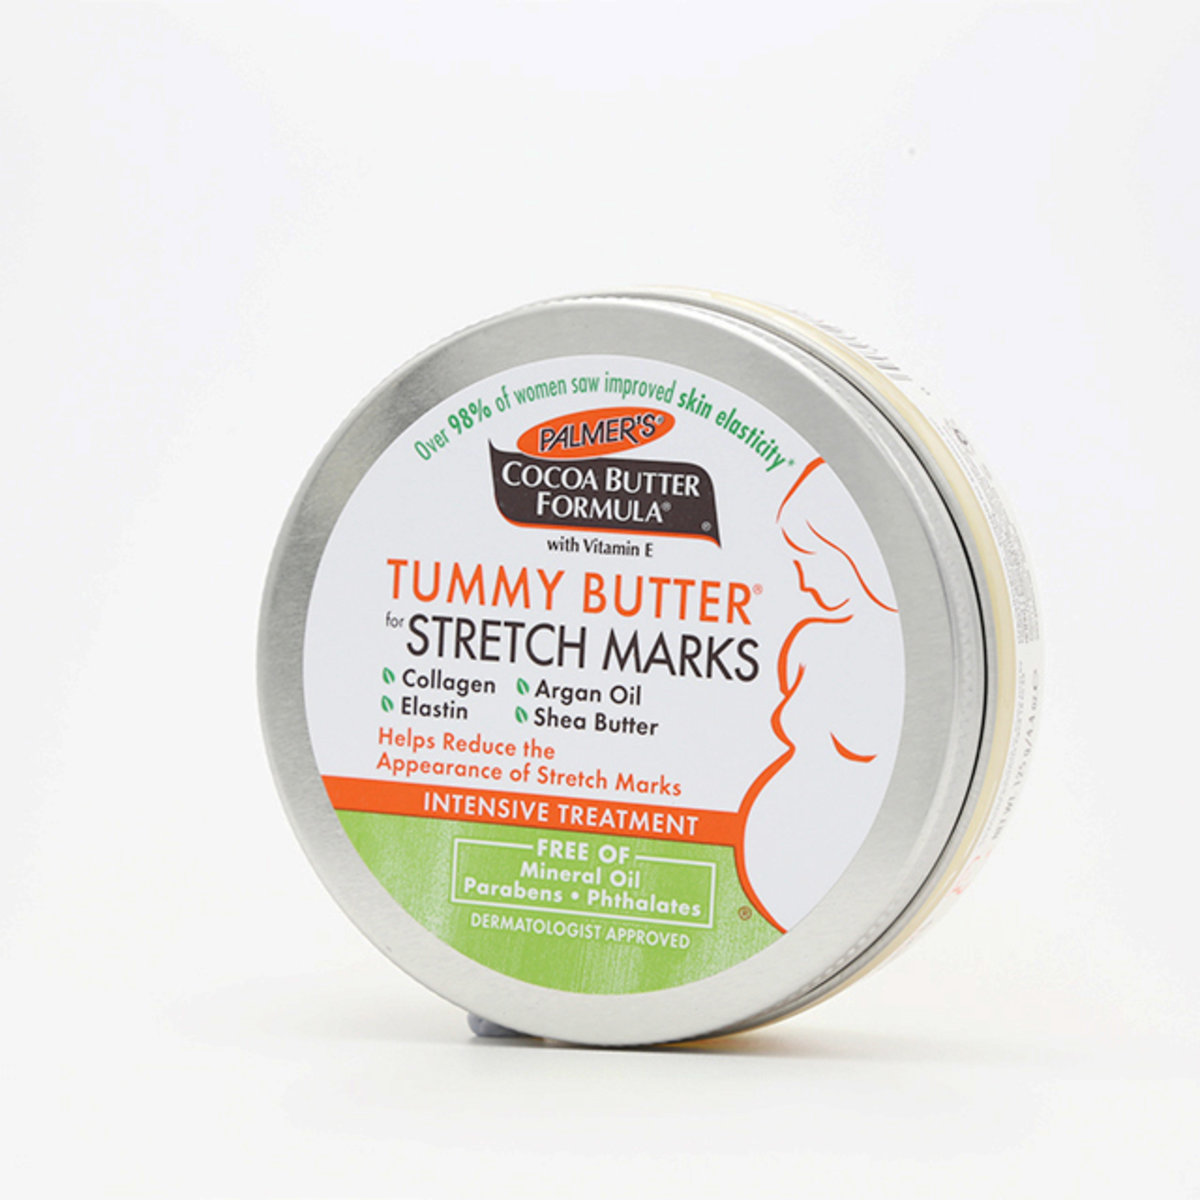 Cocoa Butter Formula Tummy Butter for Stretch Marks 125g-[Parallel Import Product]